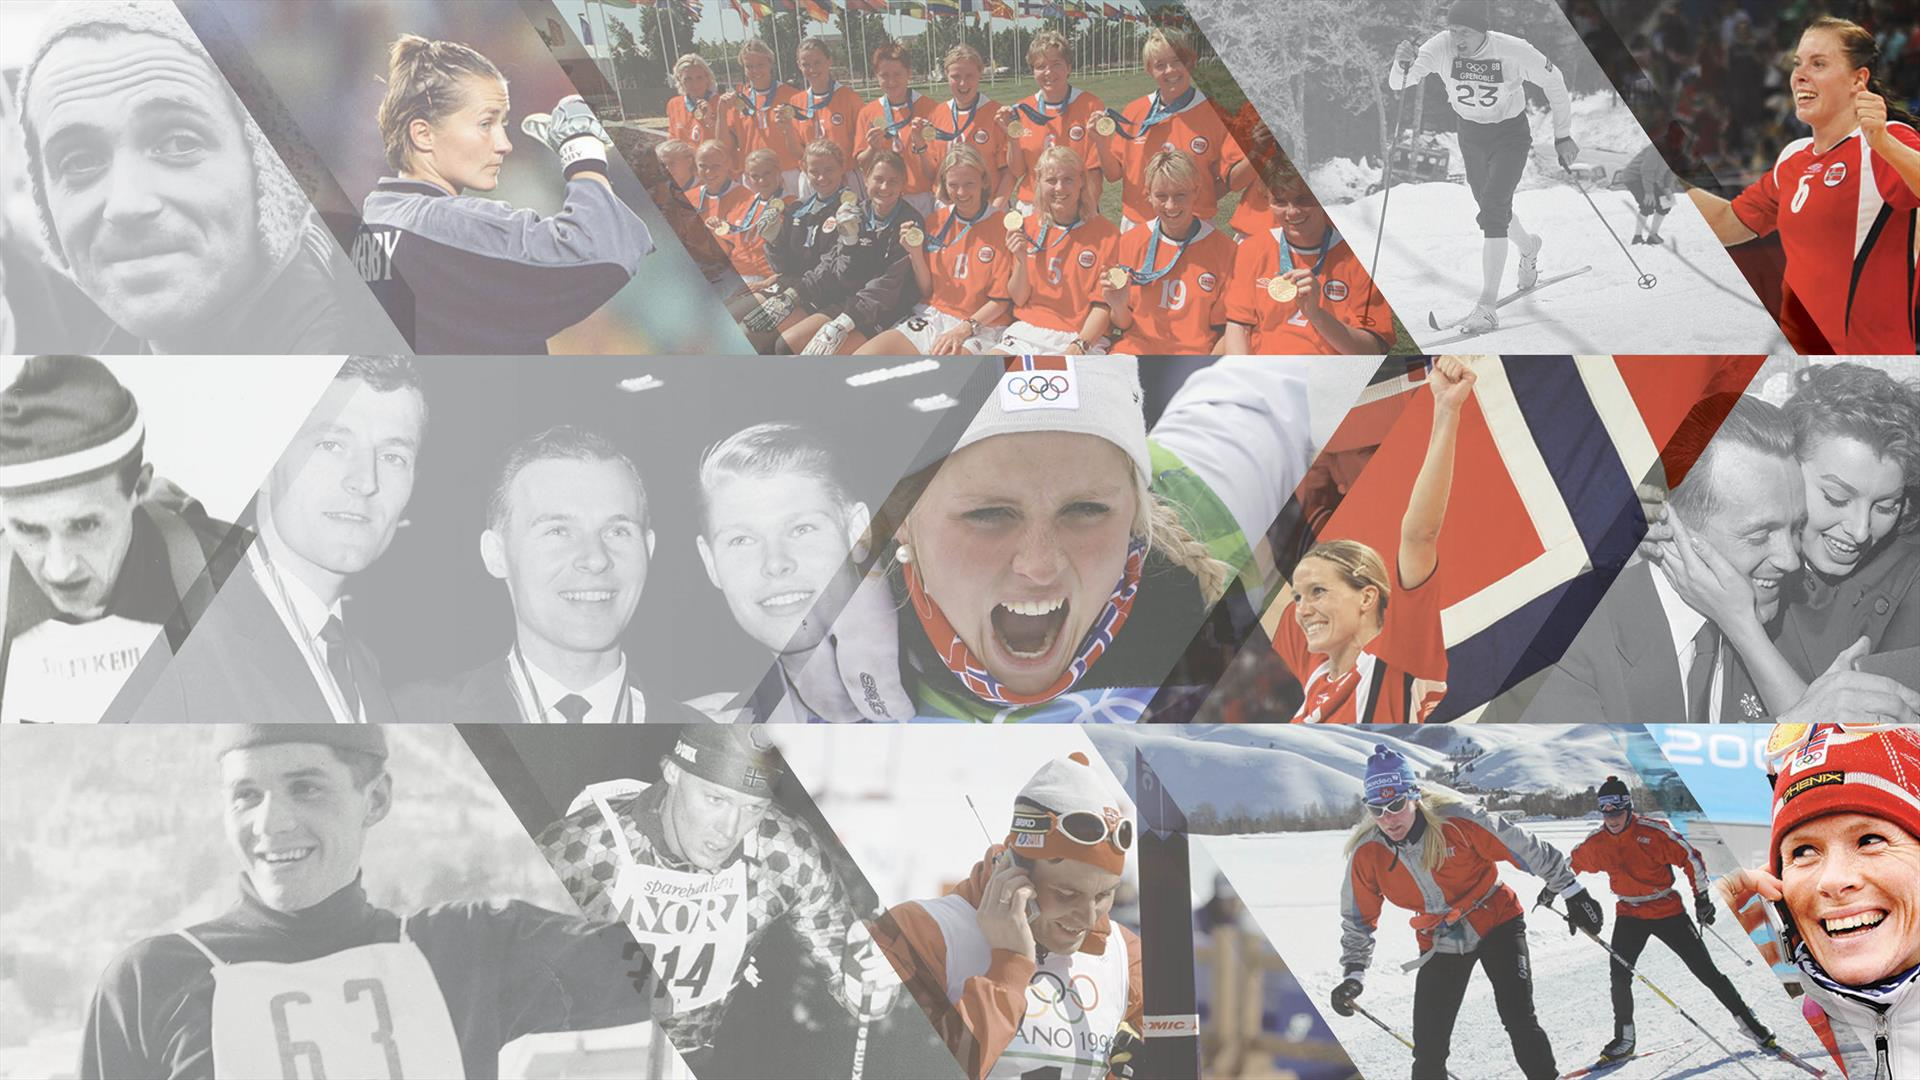 Collage with athletes from different times.